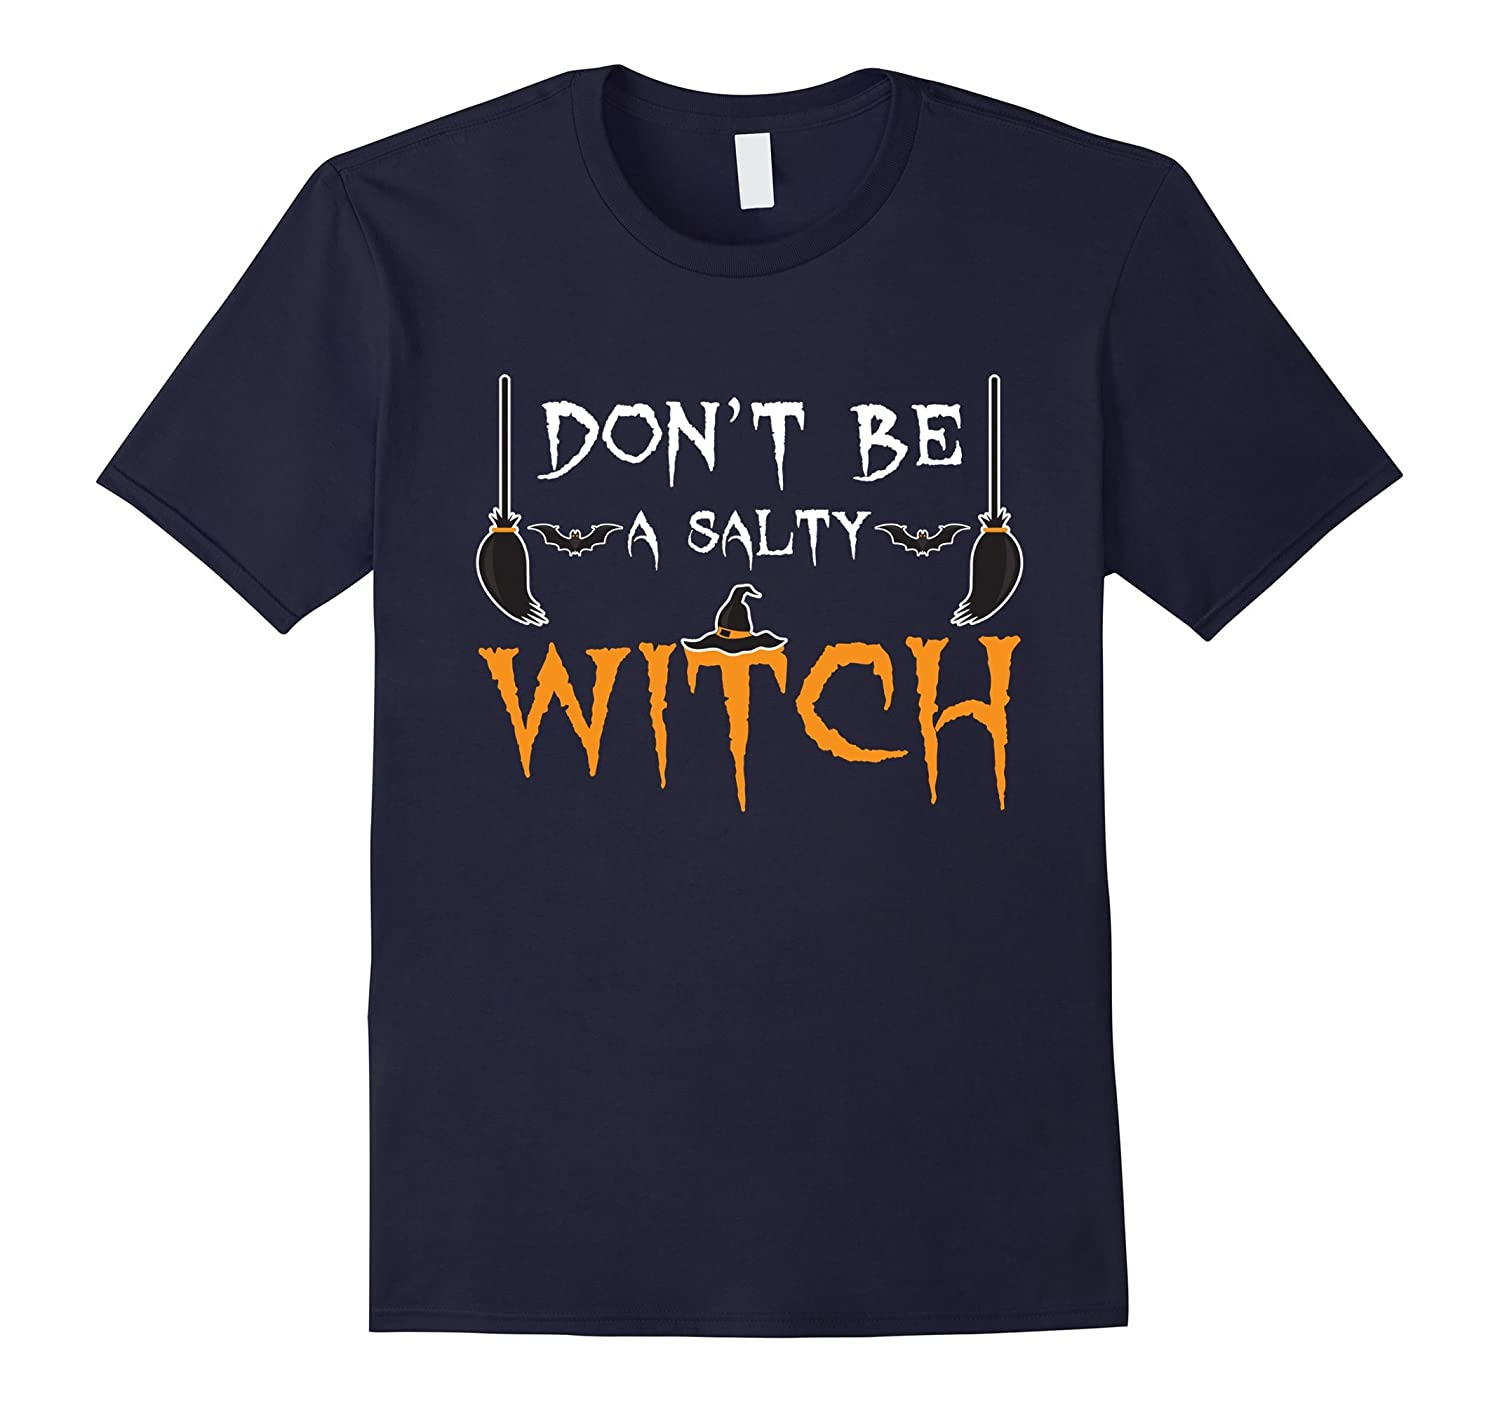 Adult Halloween Shirts - Funny Don't Be A Salty Witch TShirt-BN